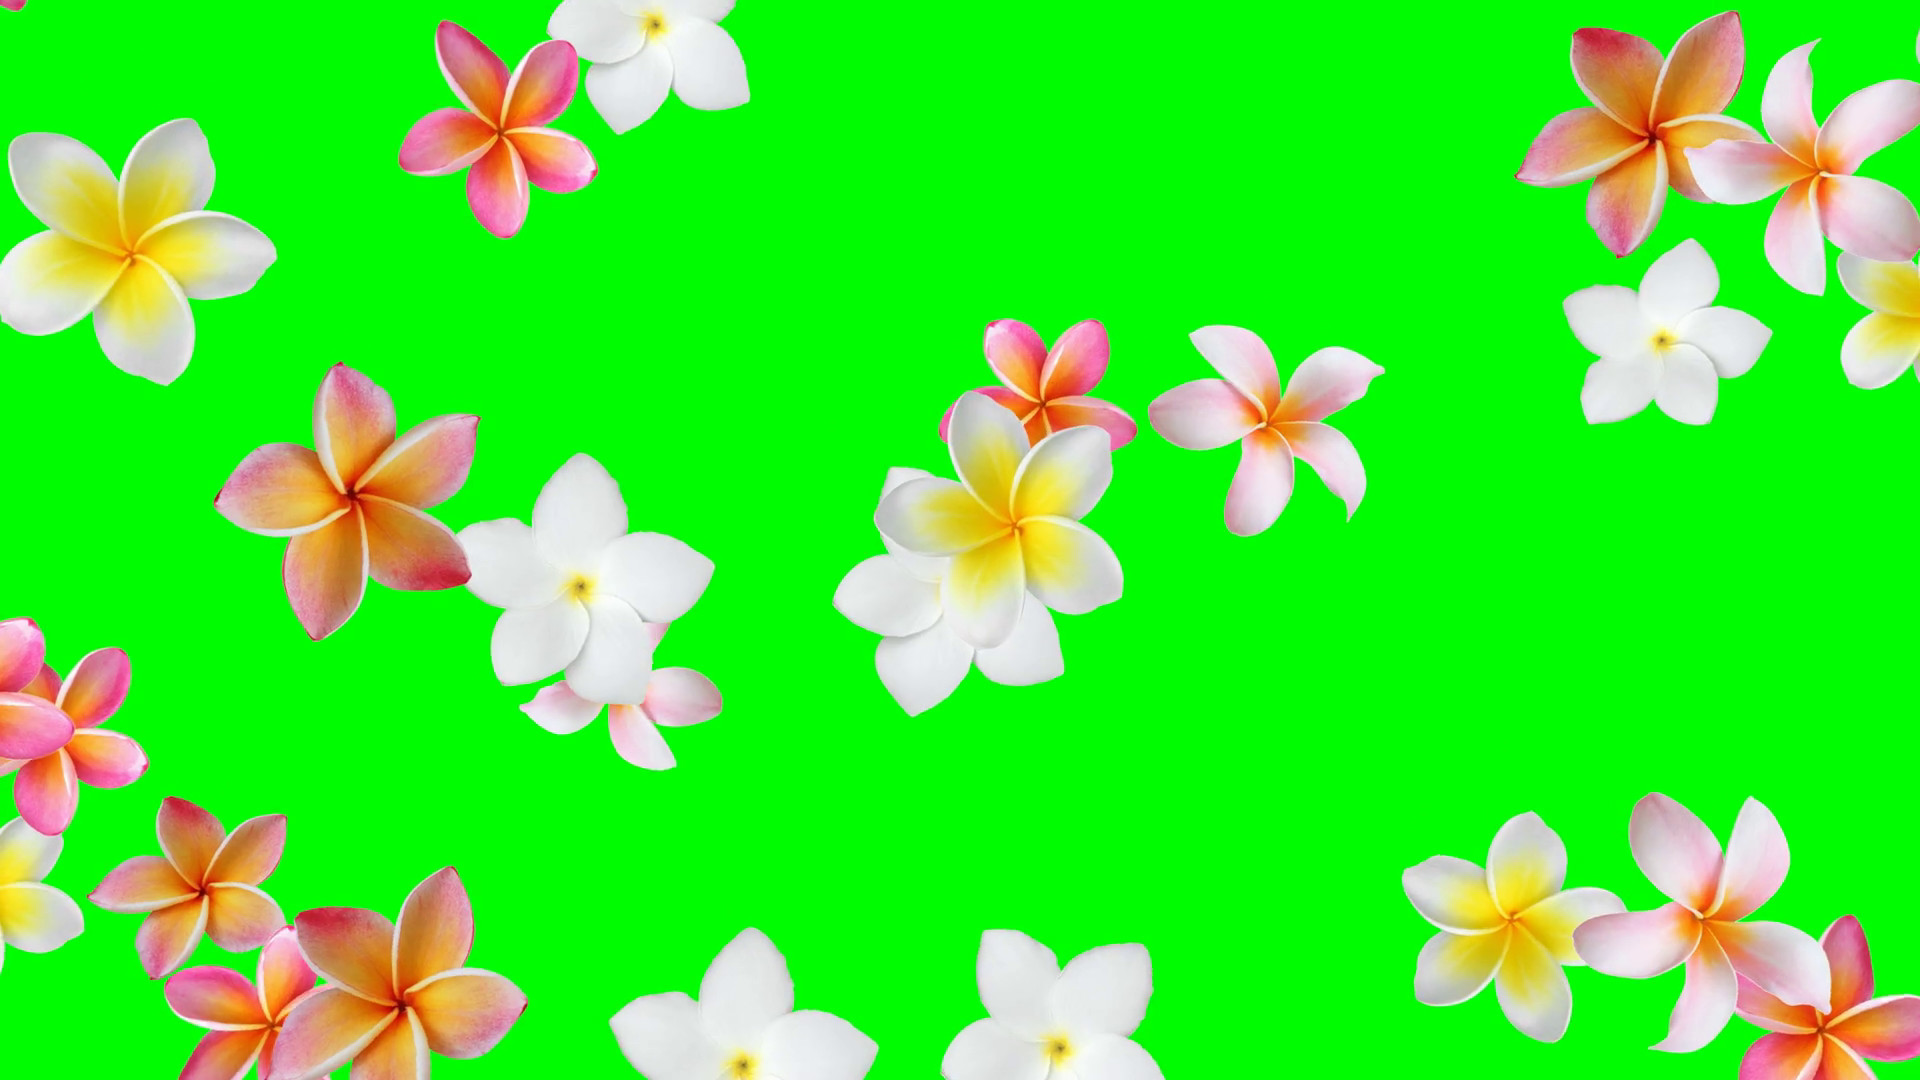 1920x1080 Flower background animation (Frangipani, Plumeria) - seamless looping, green  screen, 4K Motion Background - VideoBlocks